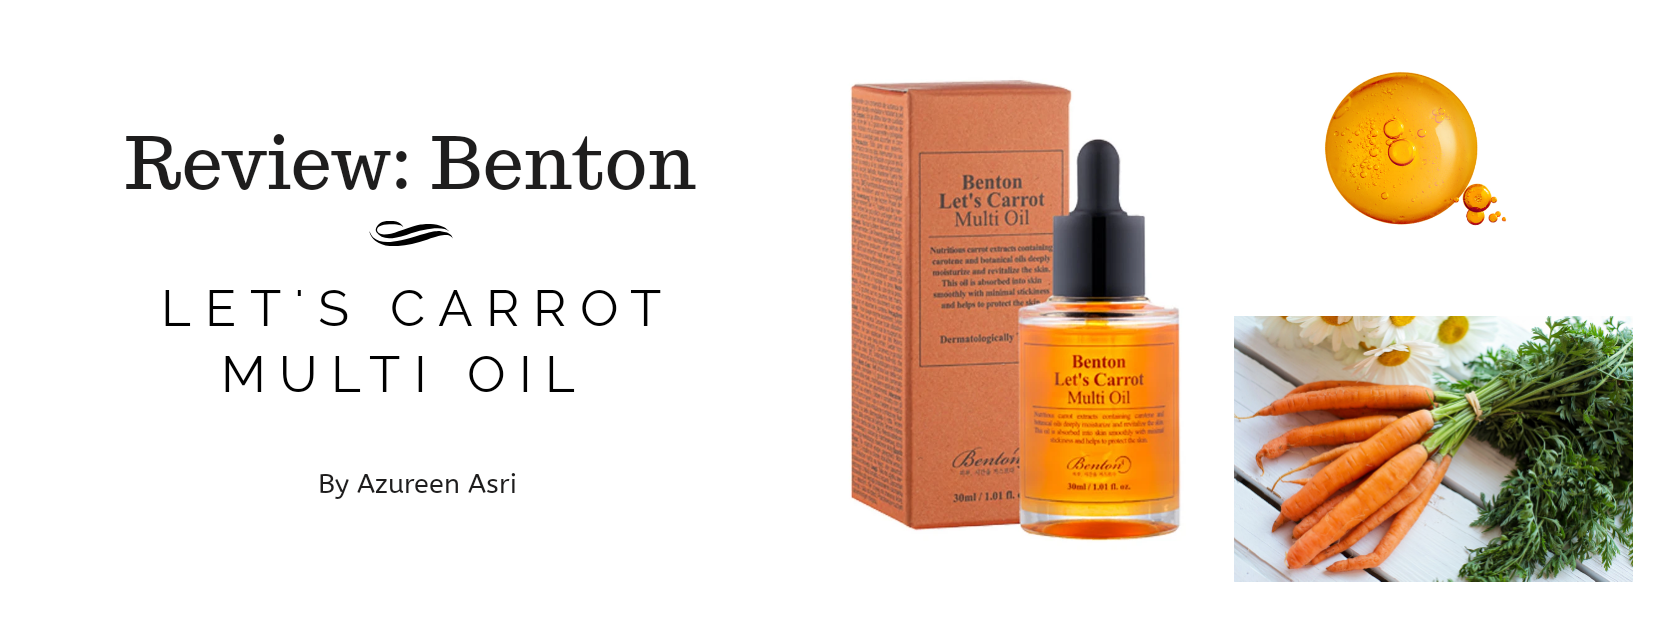 Benton Let's Carrot Multi Oil: Multipurpose Oil for Face, Body & Hair